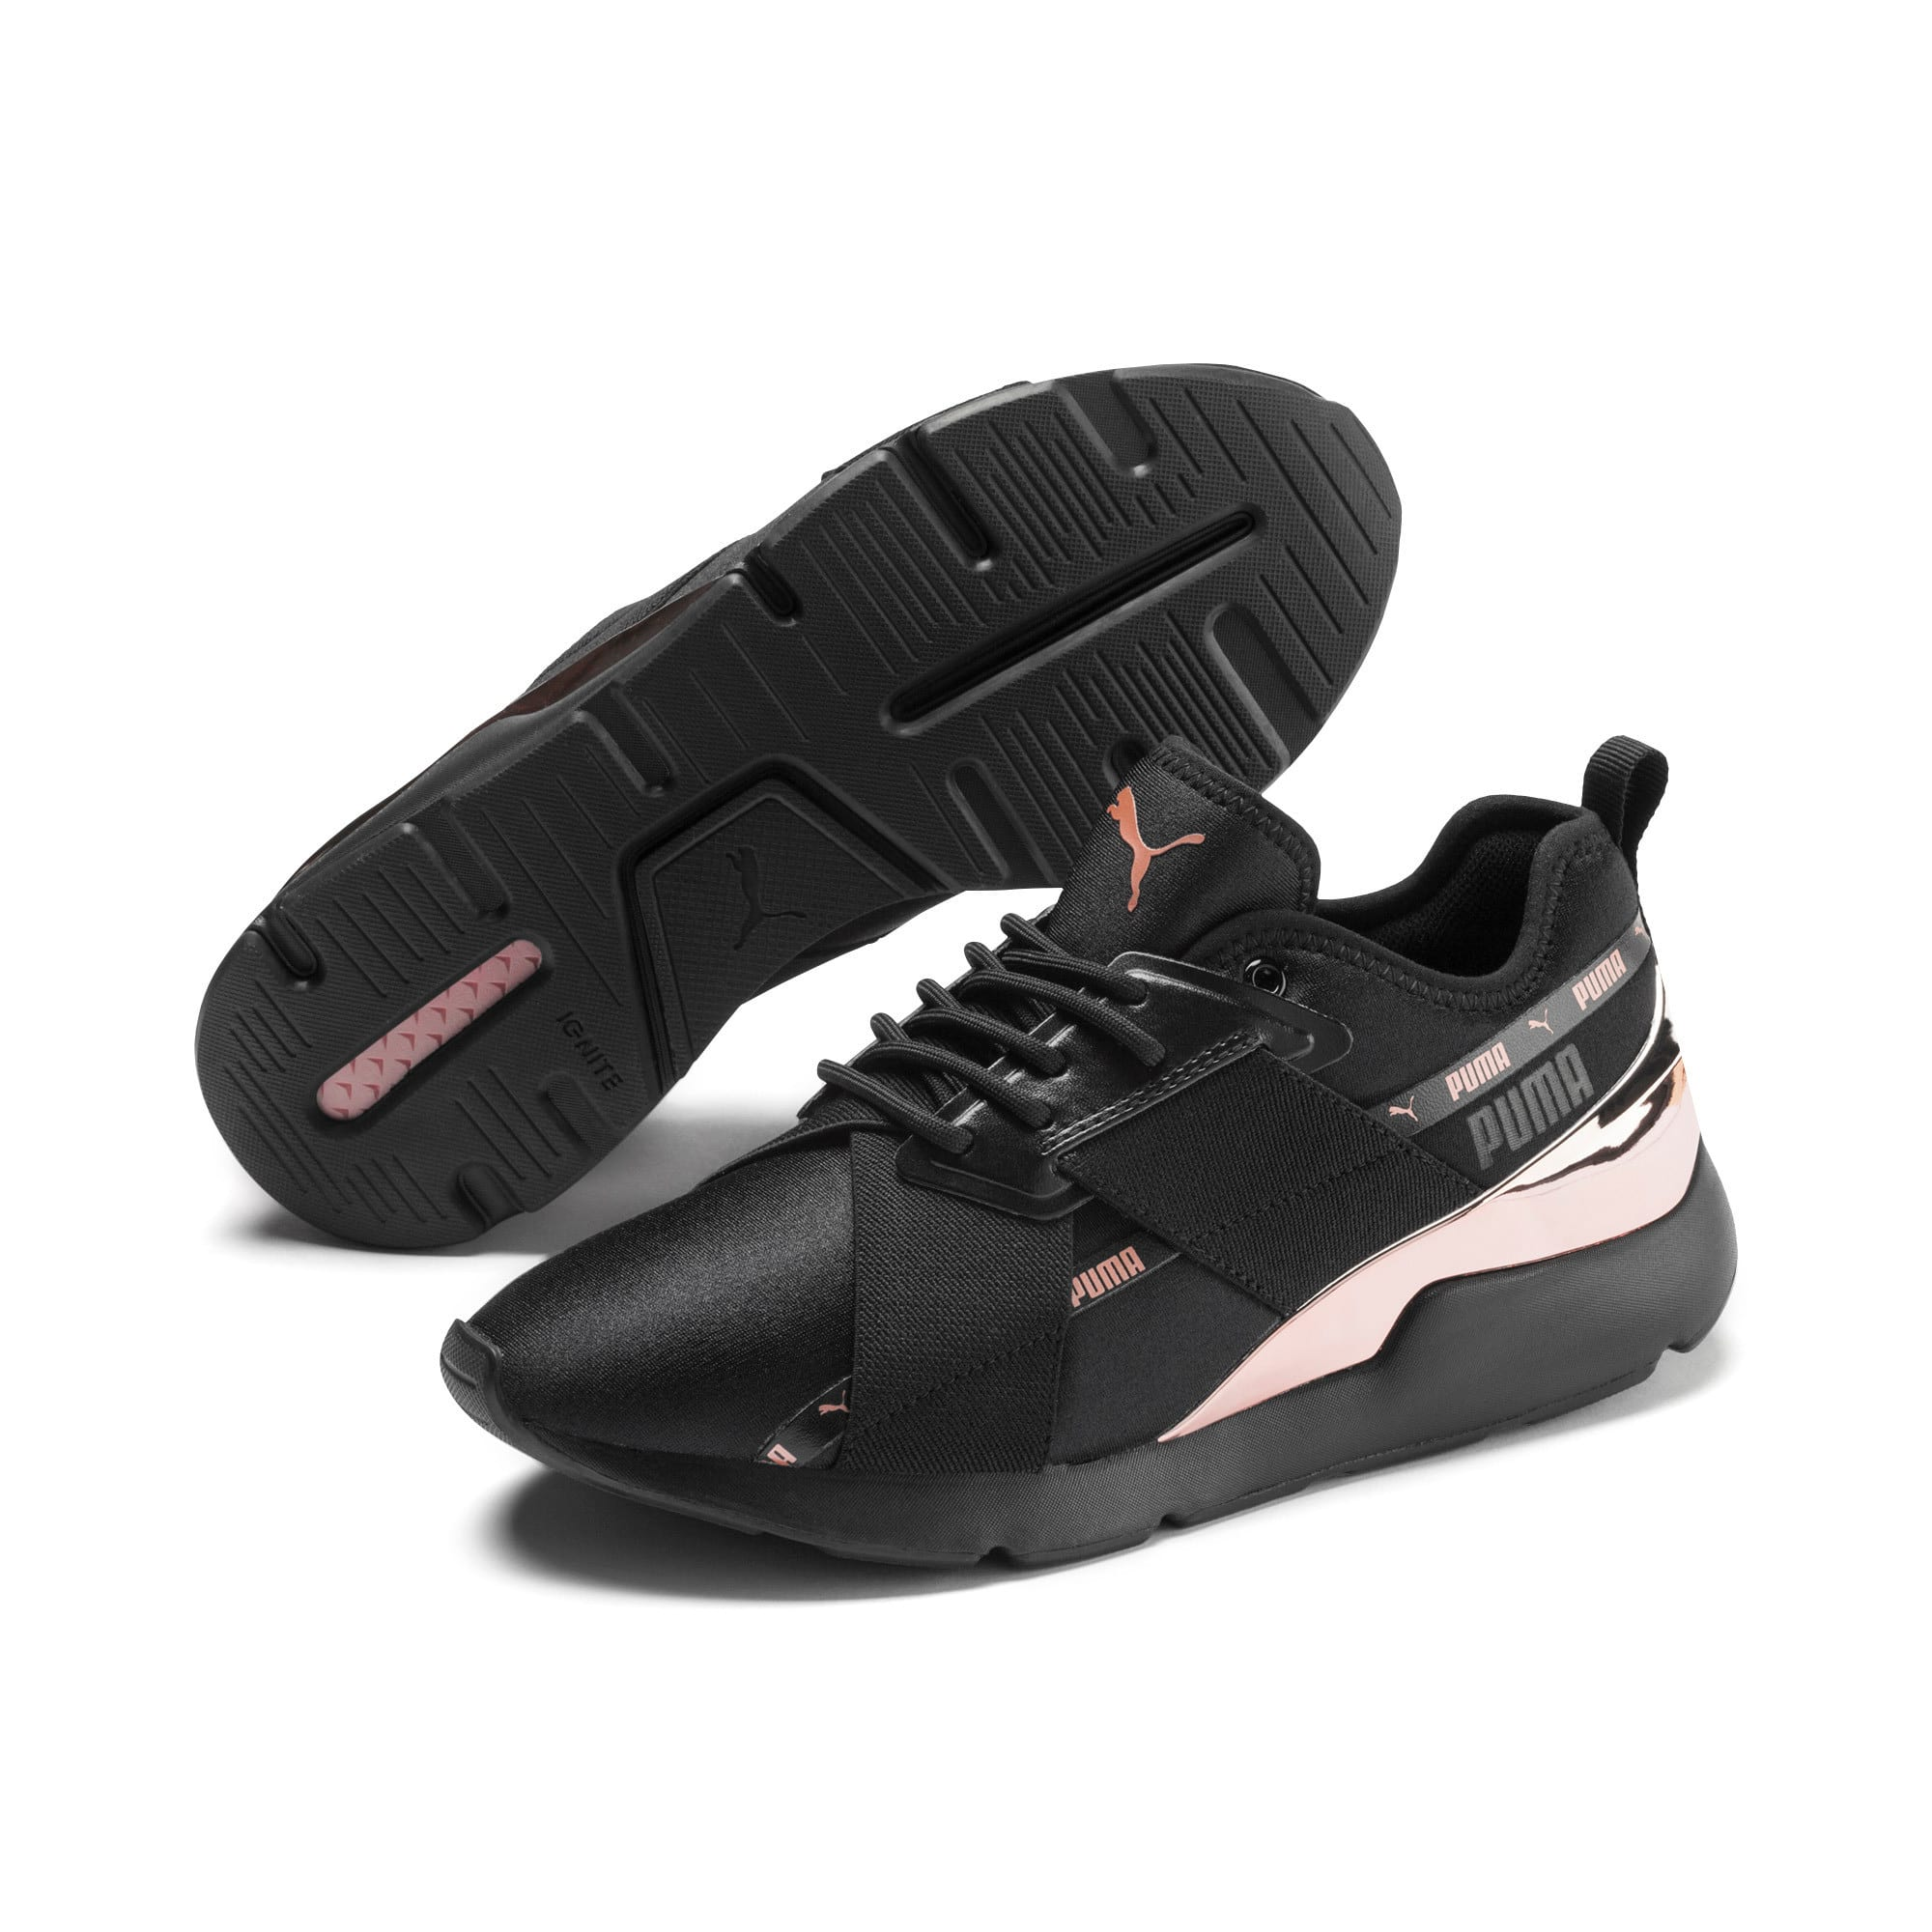 Muse X 2 Sneaker in . Size 7,7.5,8,8.5,9.5,6,6.5,9.